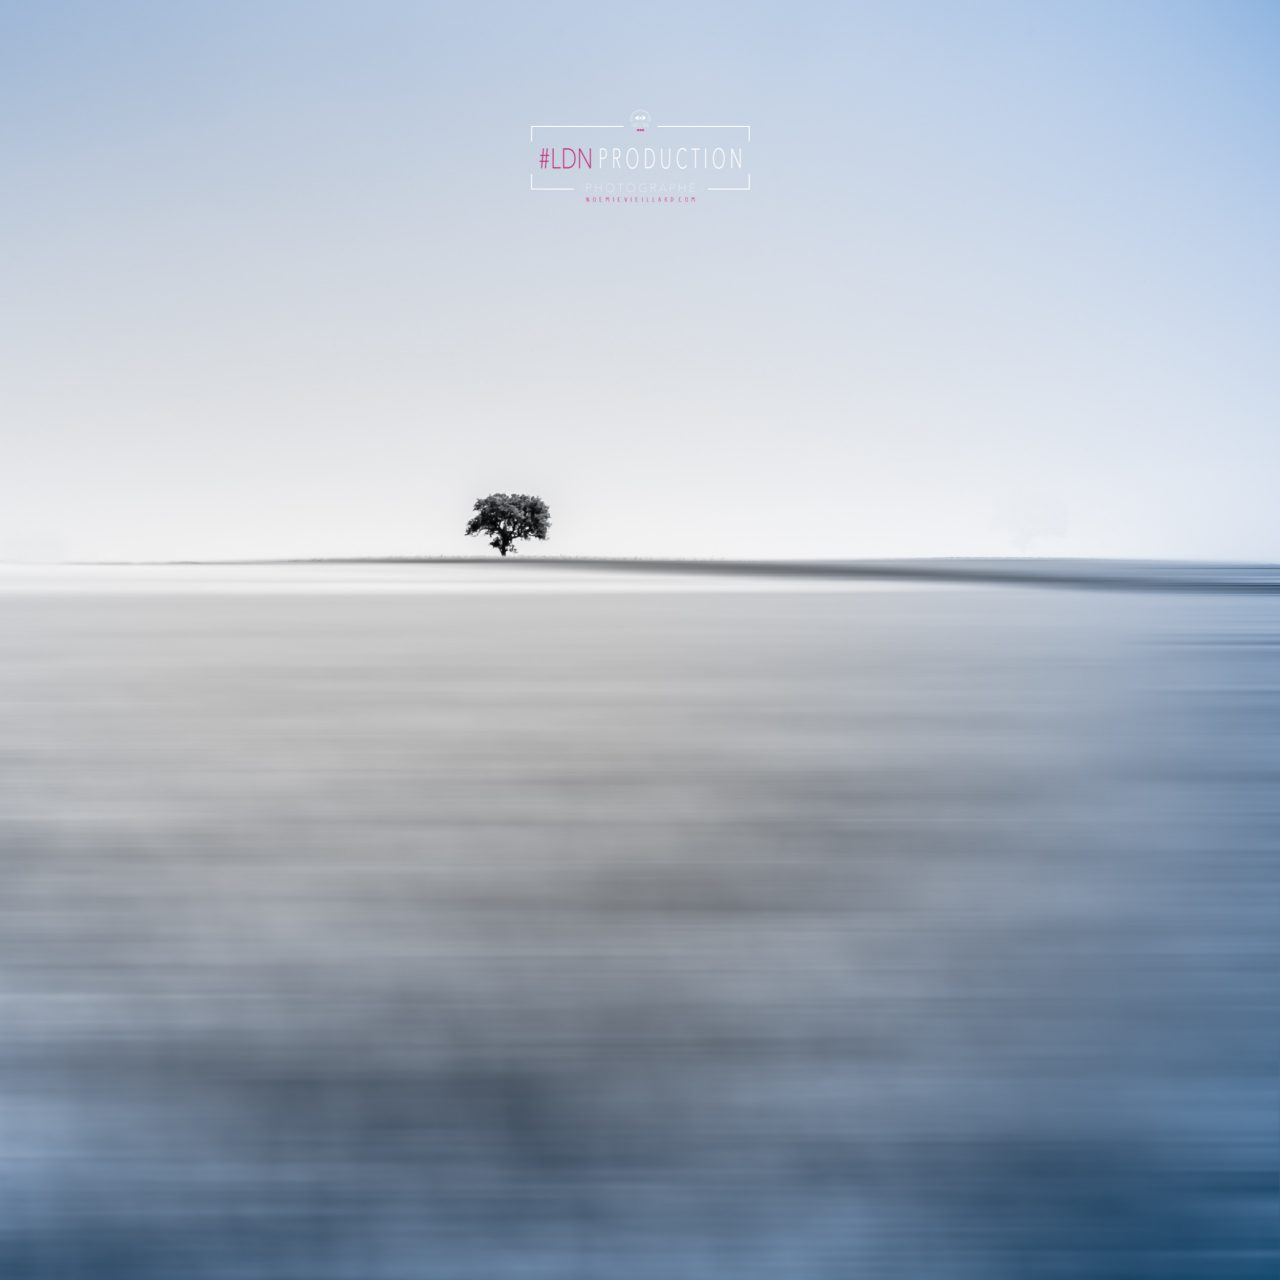 fine-art-photo-carree-arbre-seul-this-one-auvergne-noemie-vieillard-1